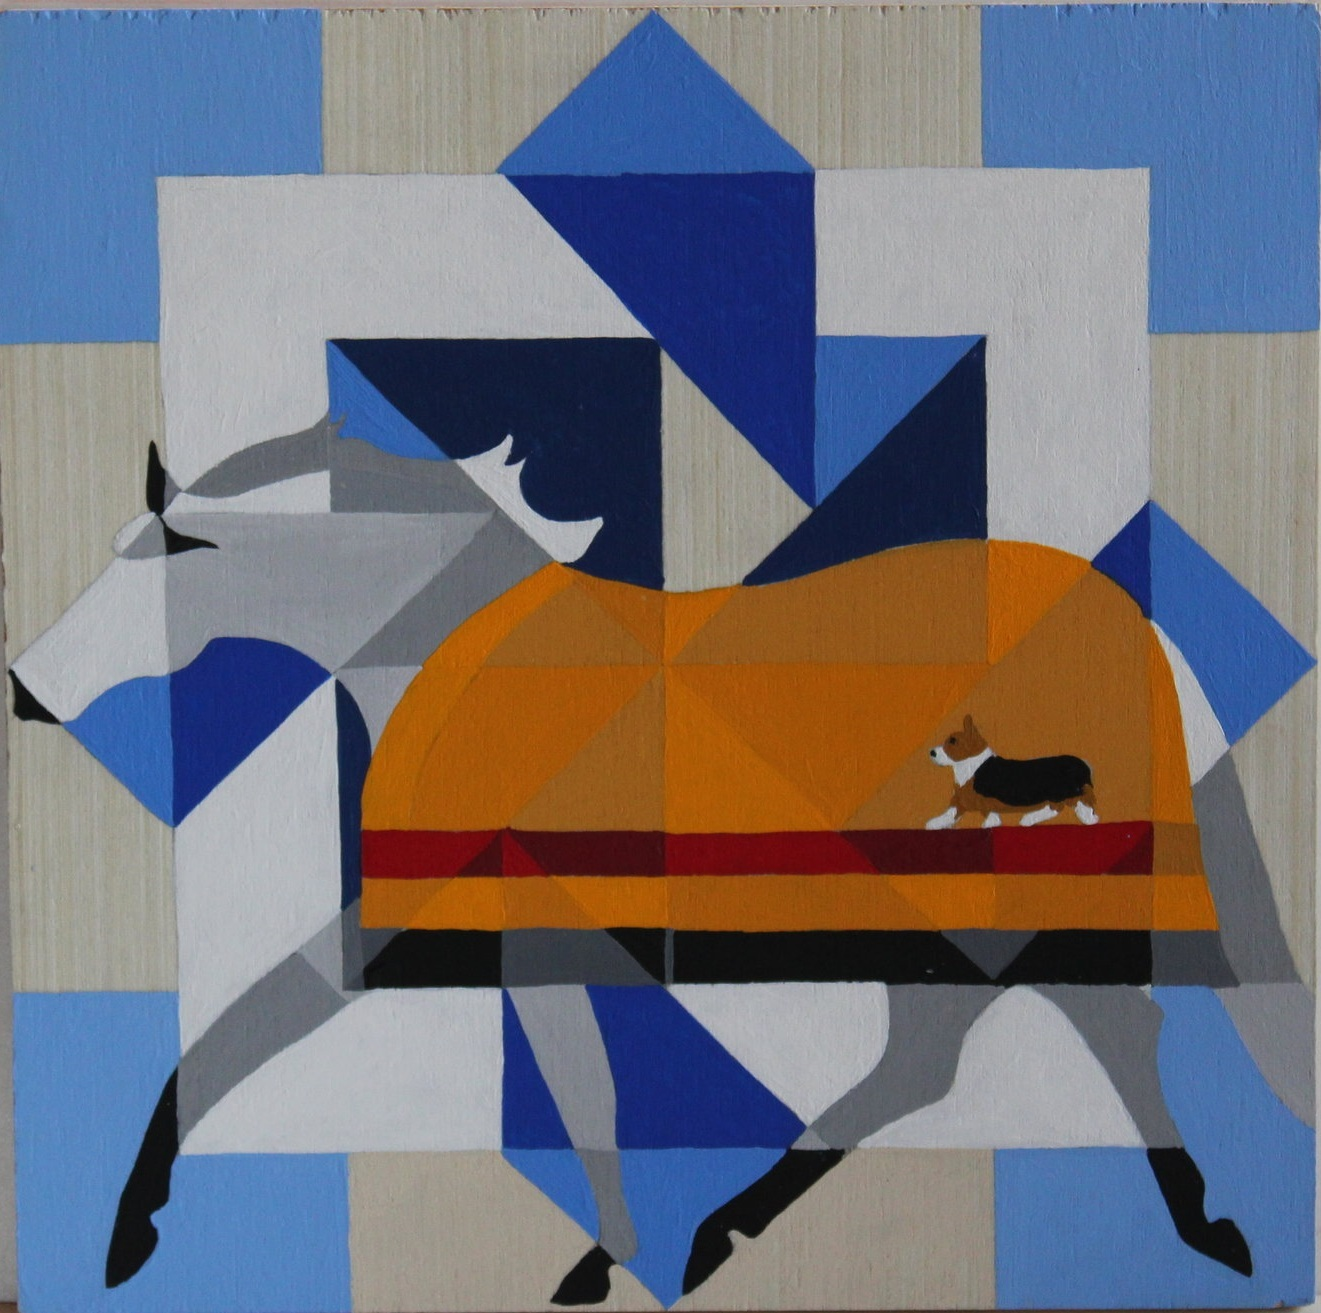 "WINTER CORGI BARN QUILT. 12 x 12"" acrylic on wood. Wrapped canvas available."